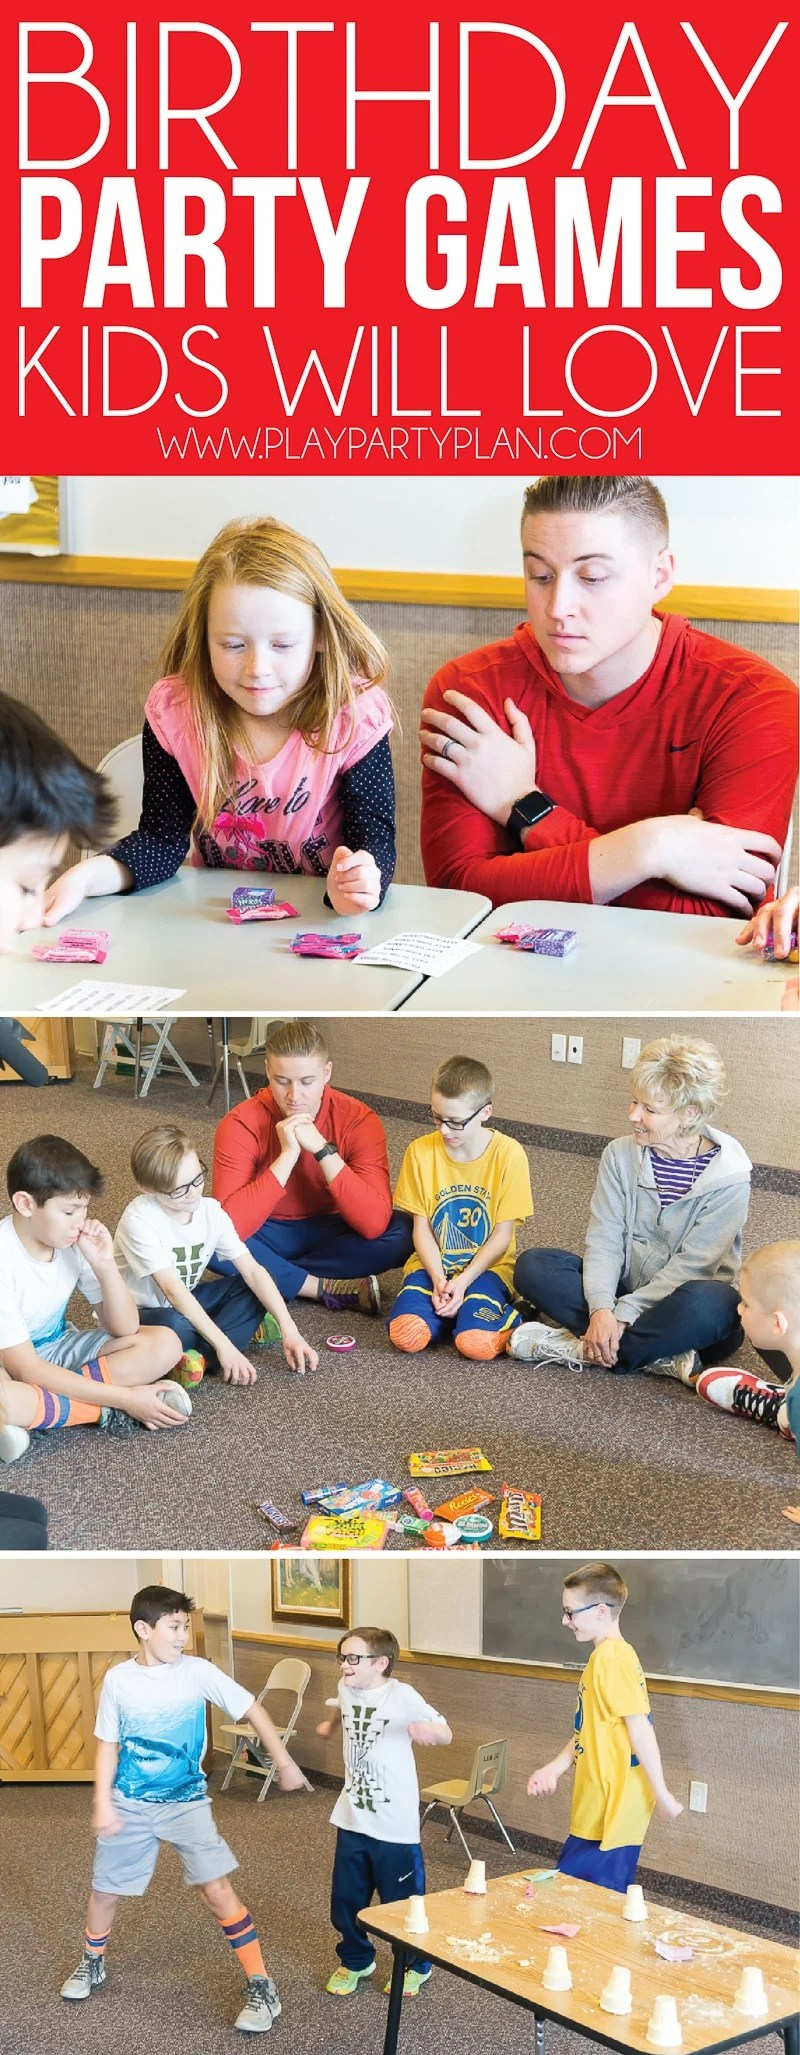 hilarious birthday party games